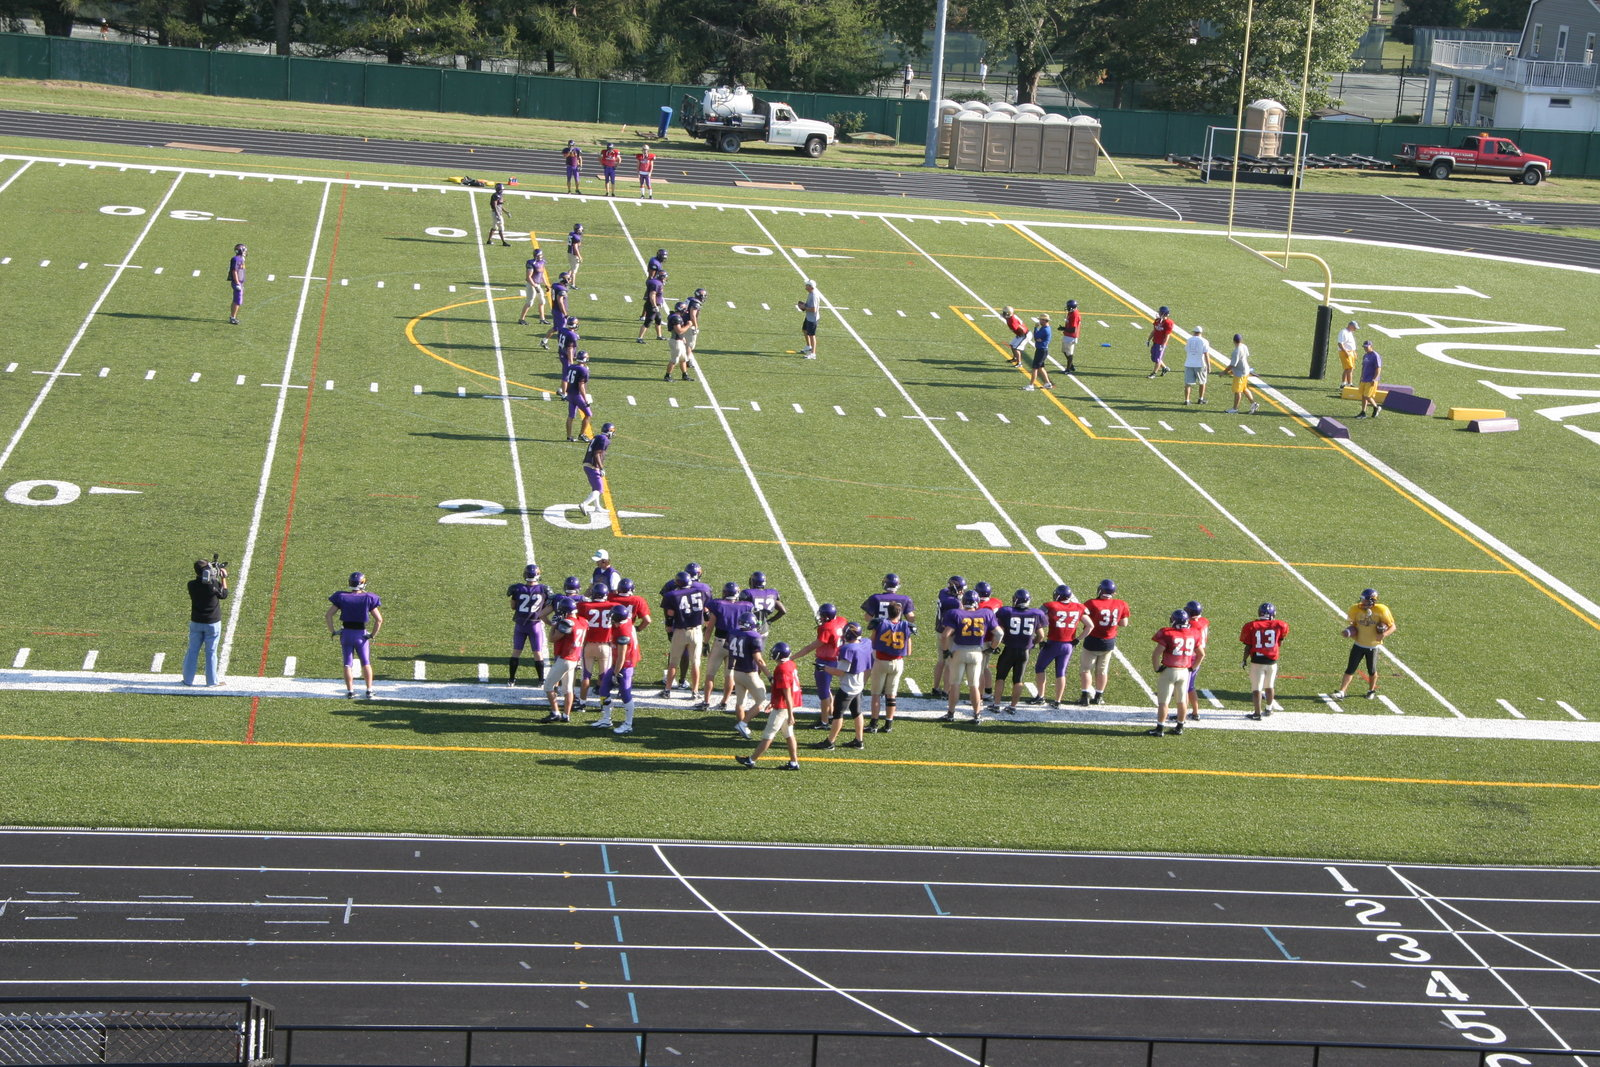 Wilfrid Laurier University Football Team Practicing At